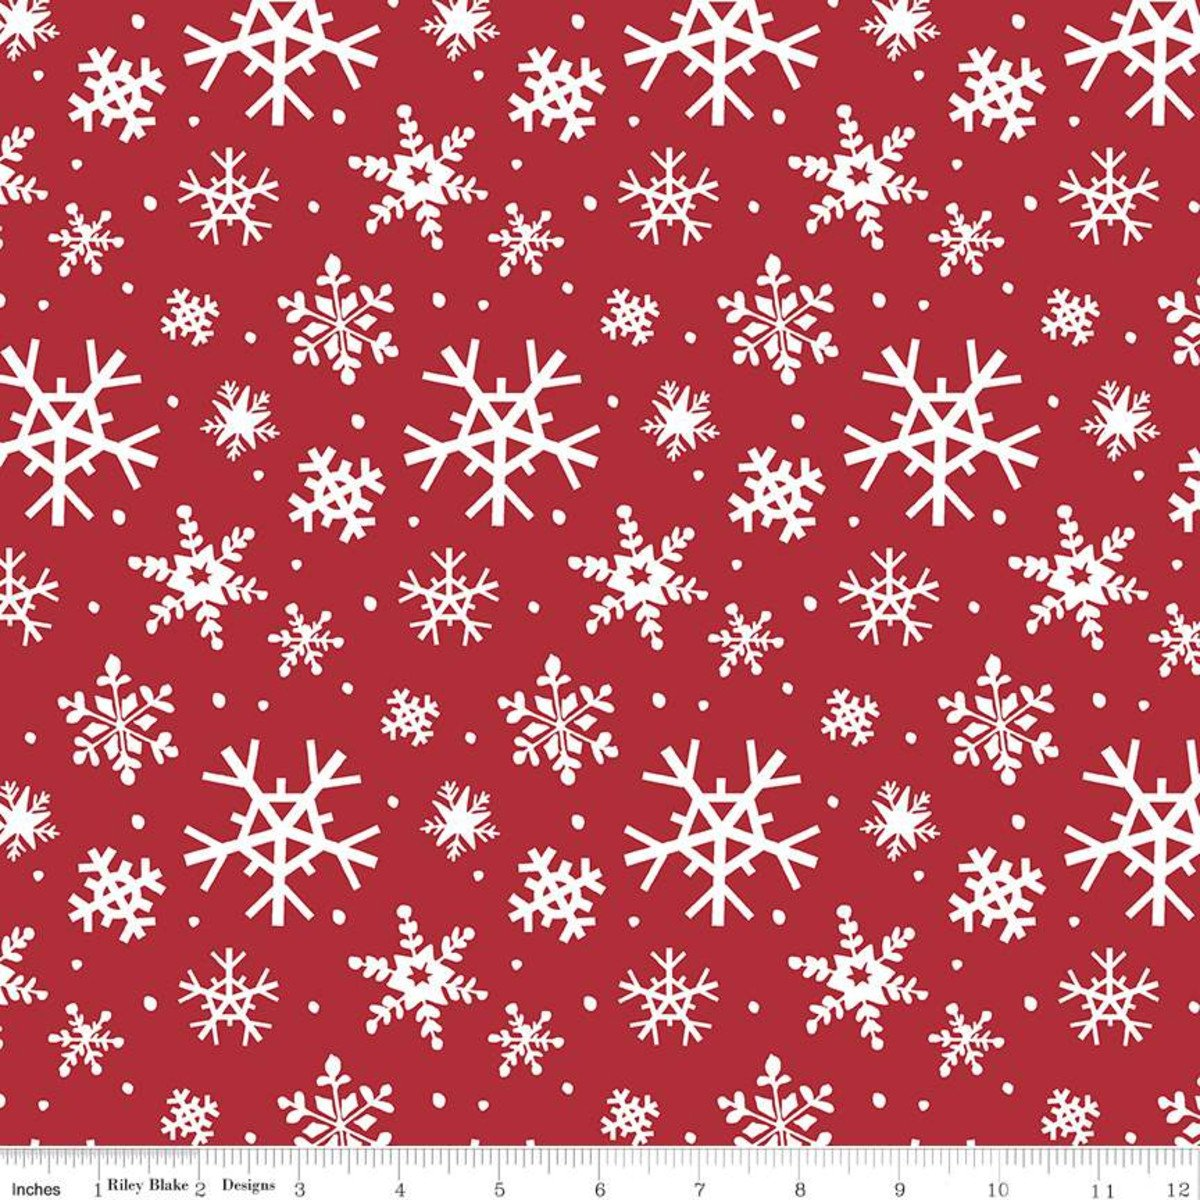 Holly Holiday Snowflakes C10882 Red